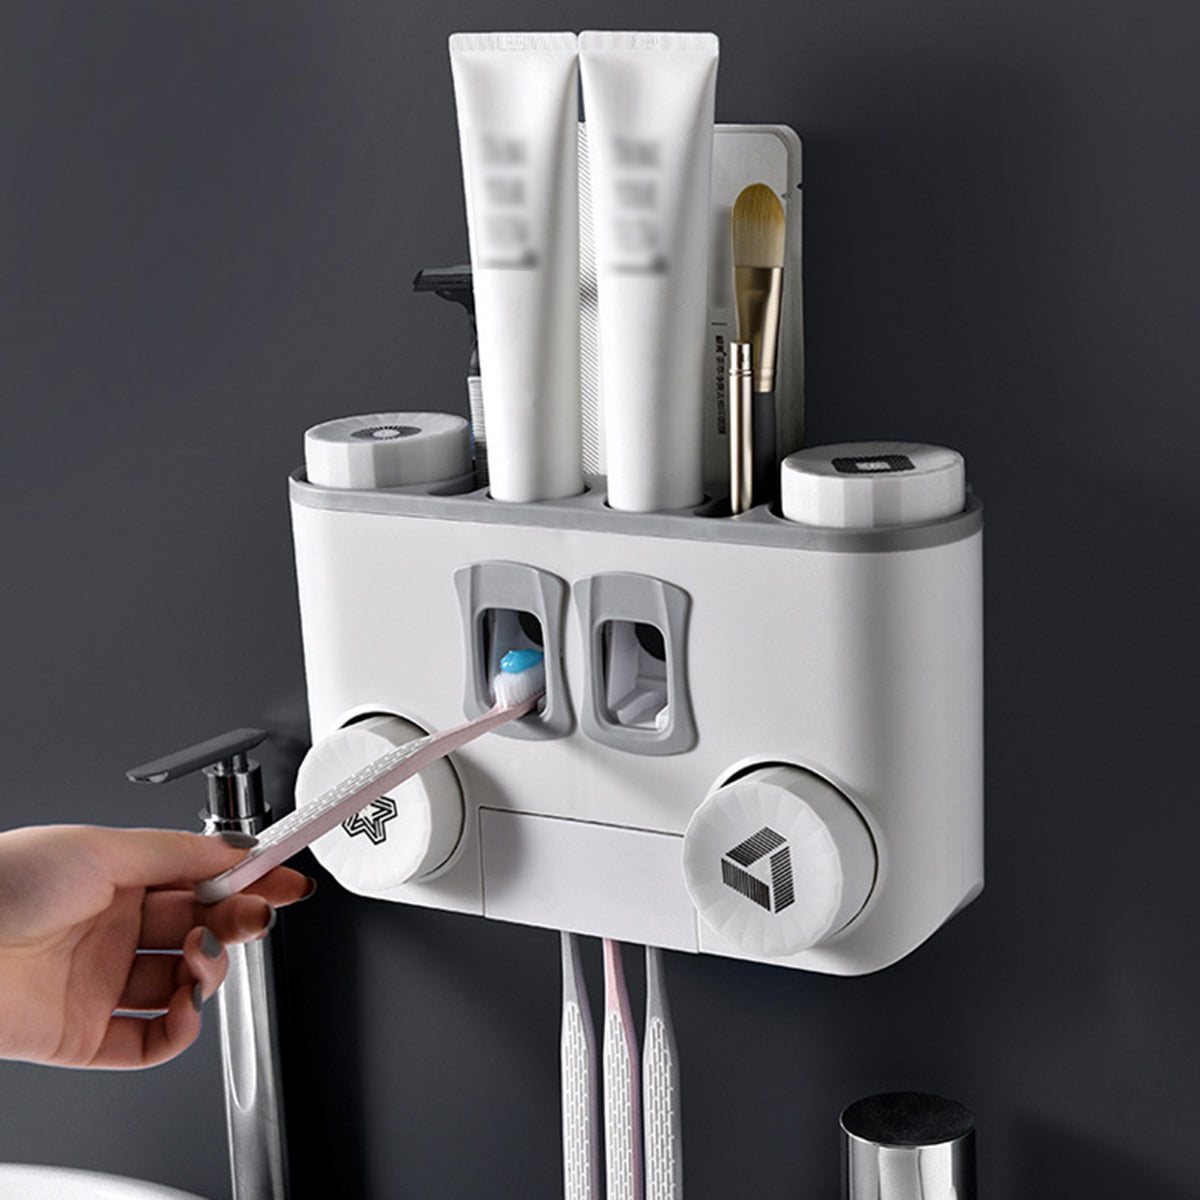 cozyrex,Toothbrush Holder No Drill Wall Mount Storage Rack Bathroom Toothpaste Dispenser Shelf,CozyRex,